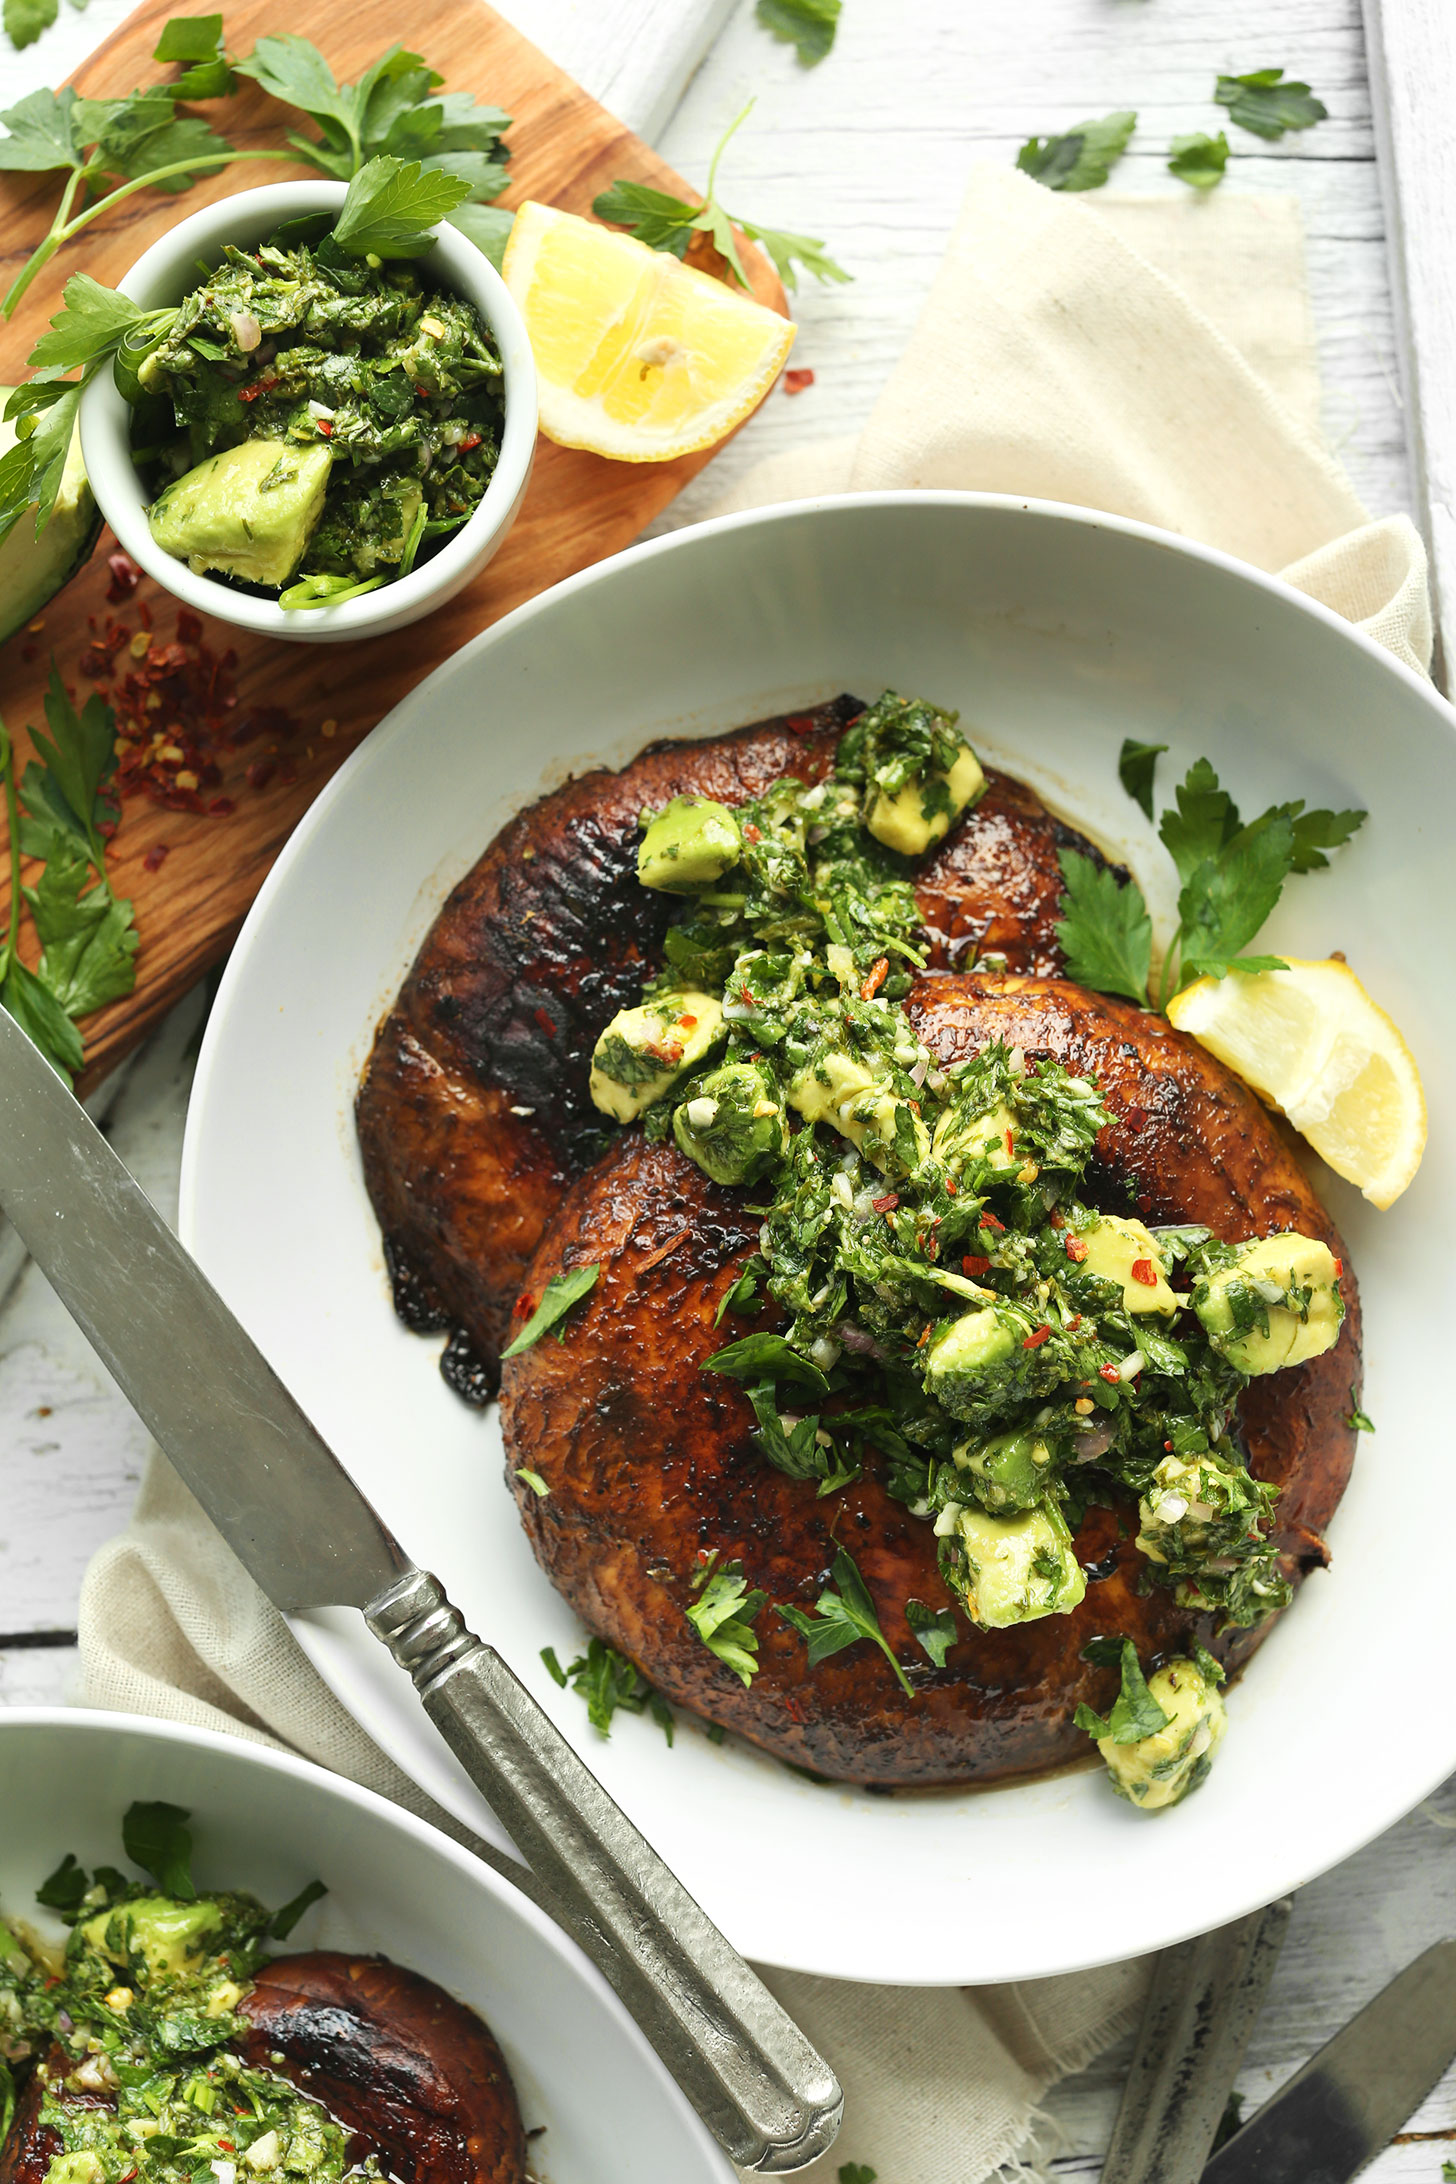 Bowl with Grilled Portobello Steaks topped with Avocado Chimichurri for a vegan grill recipe